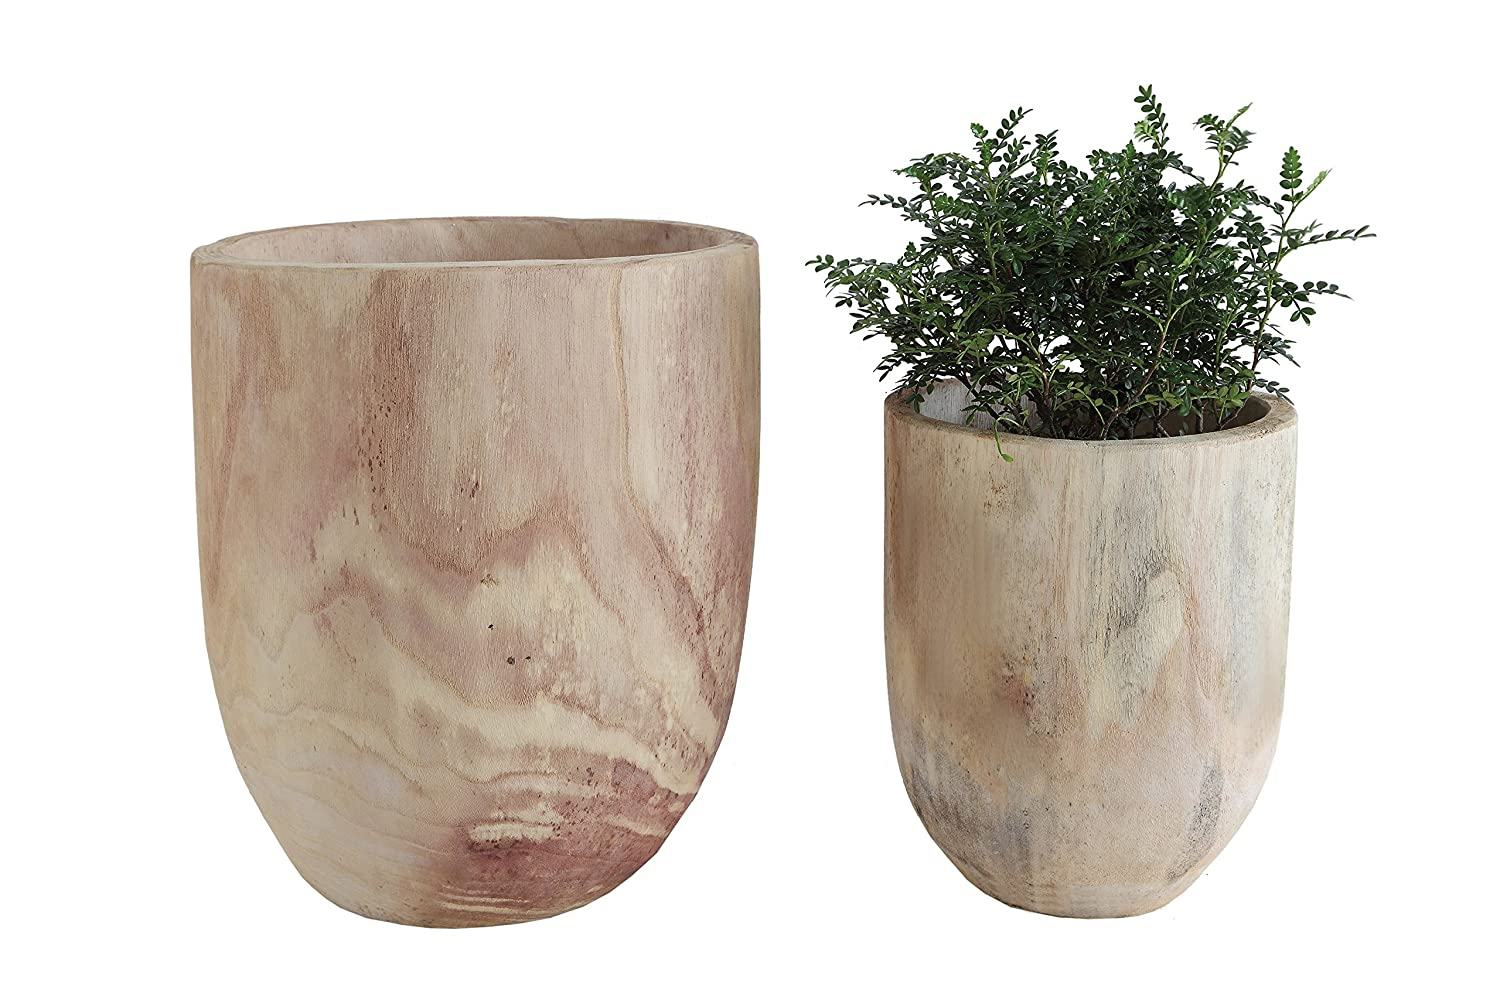 Rustic scrubbed wood rounded Paulownia pots for French farmhouse decorating and European country style rooms.